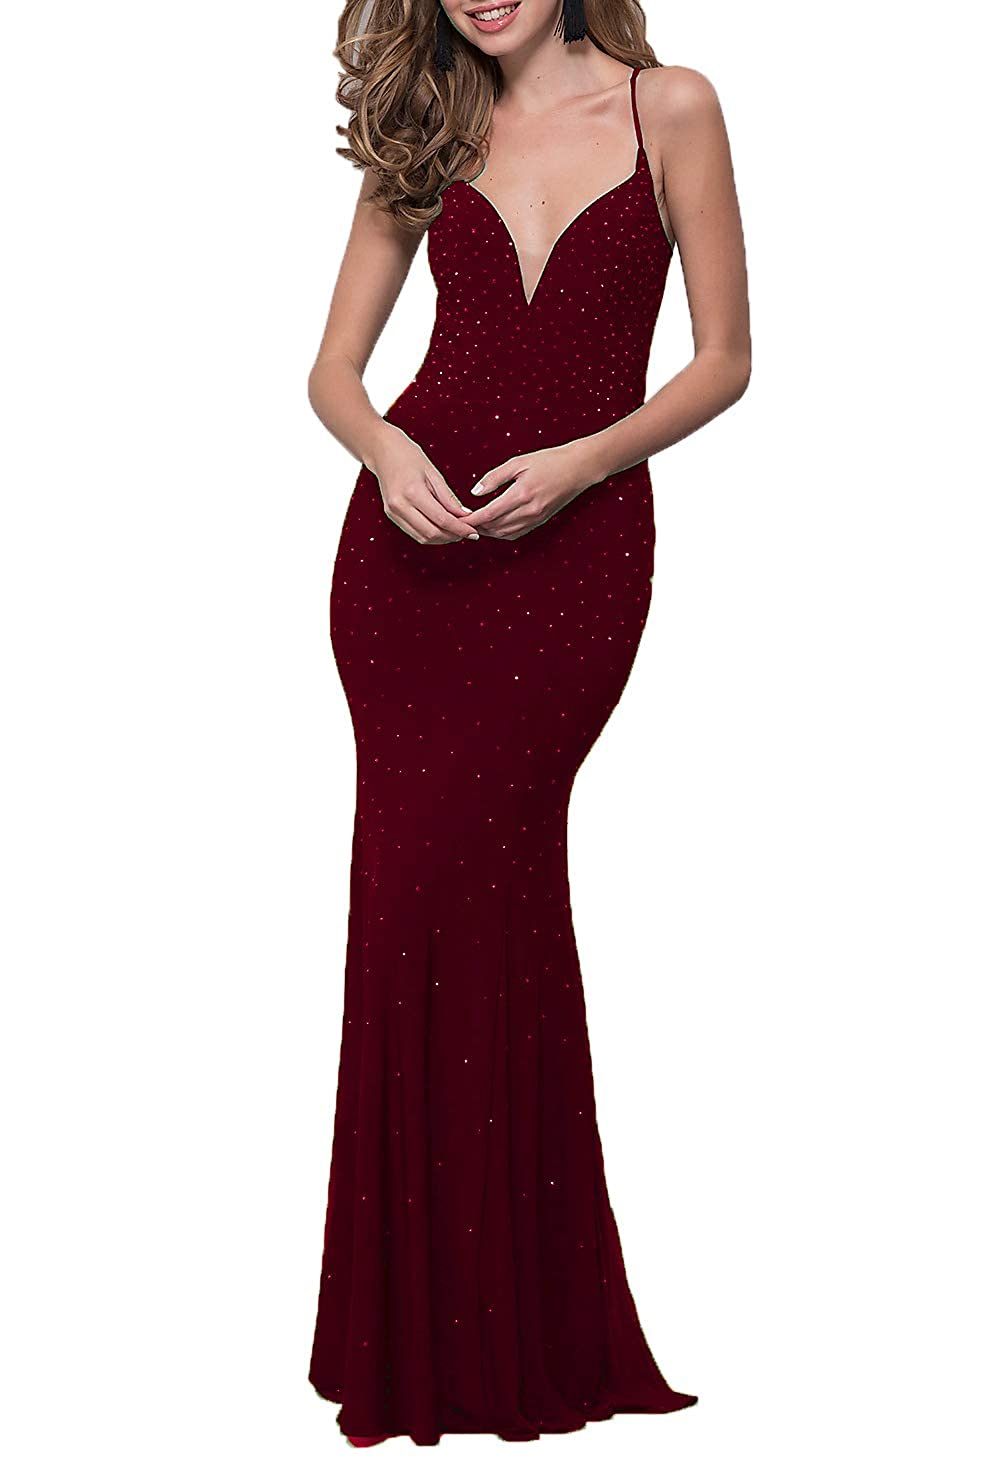 Burgundy Wanshaqin Women's CorsetBack Long Beaded Formal Dress Evening Wedding Party Bridesmaid Gown